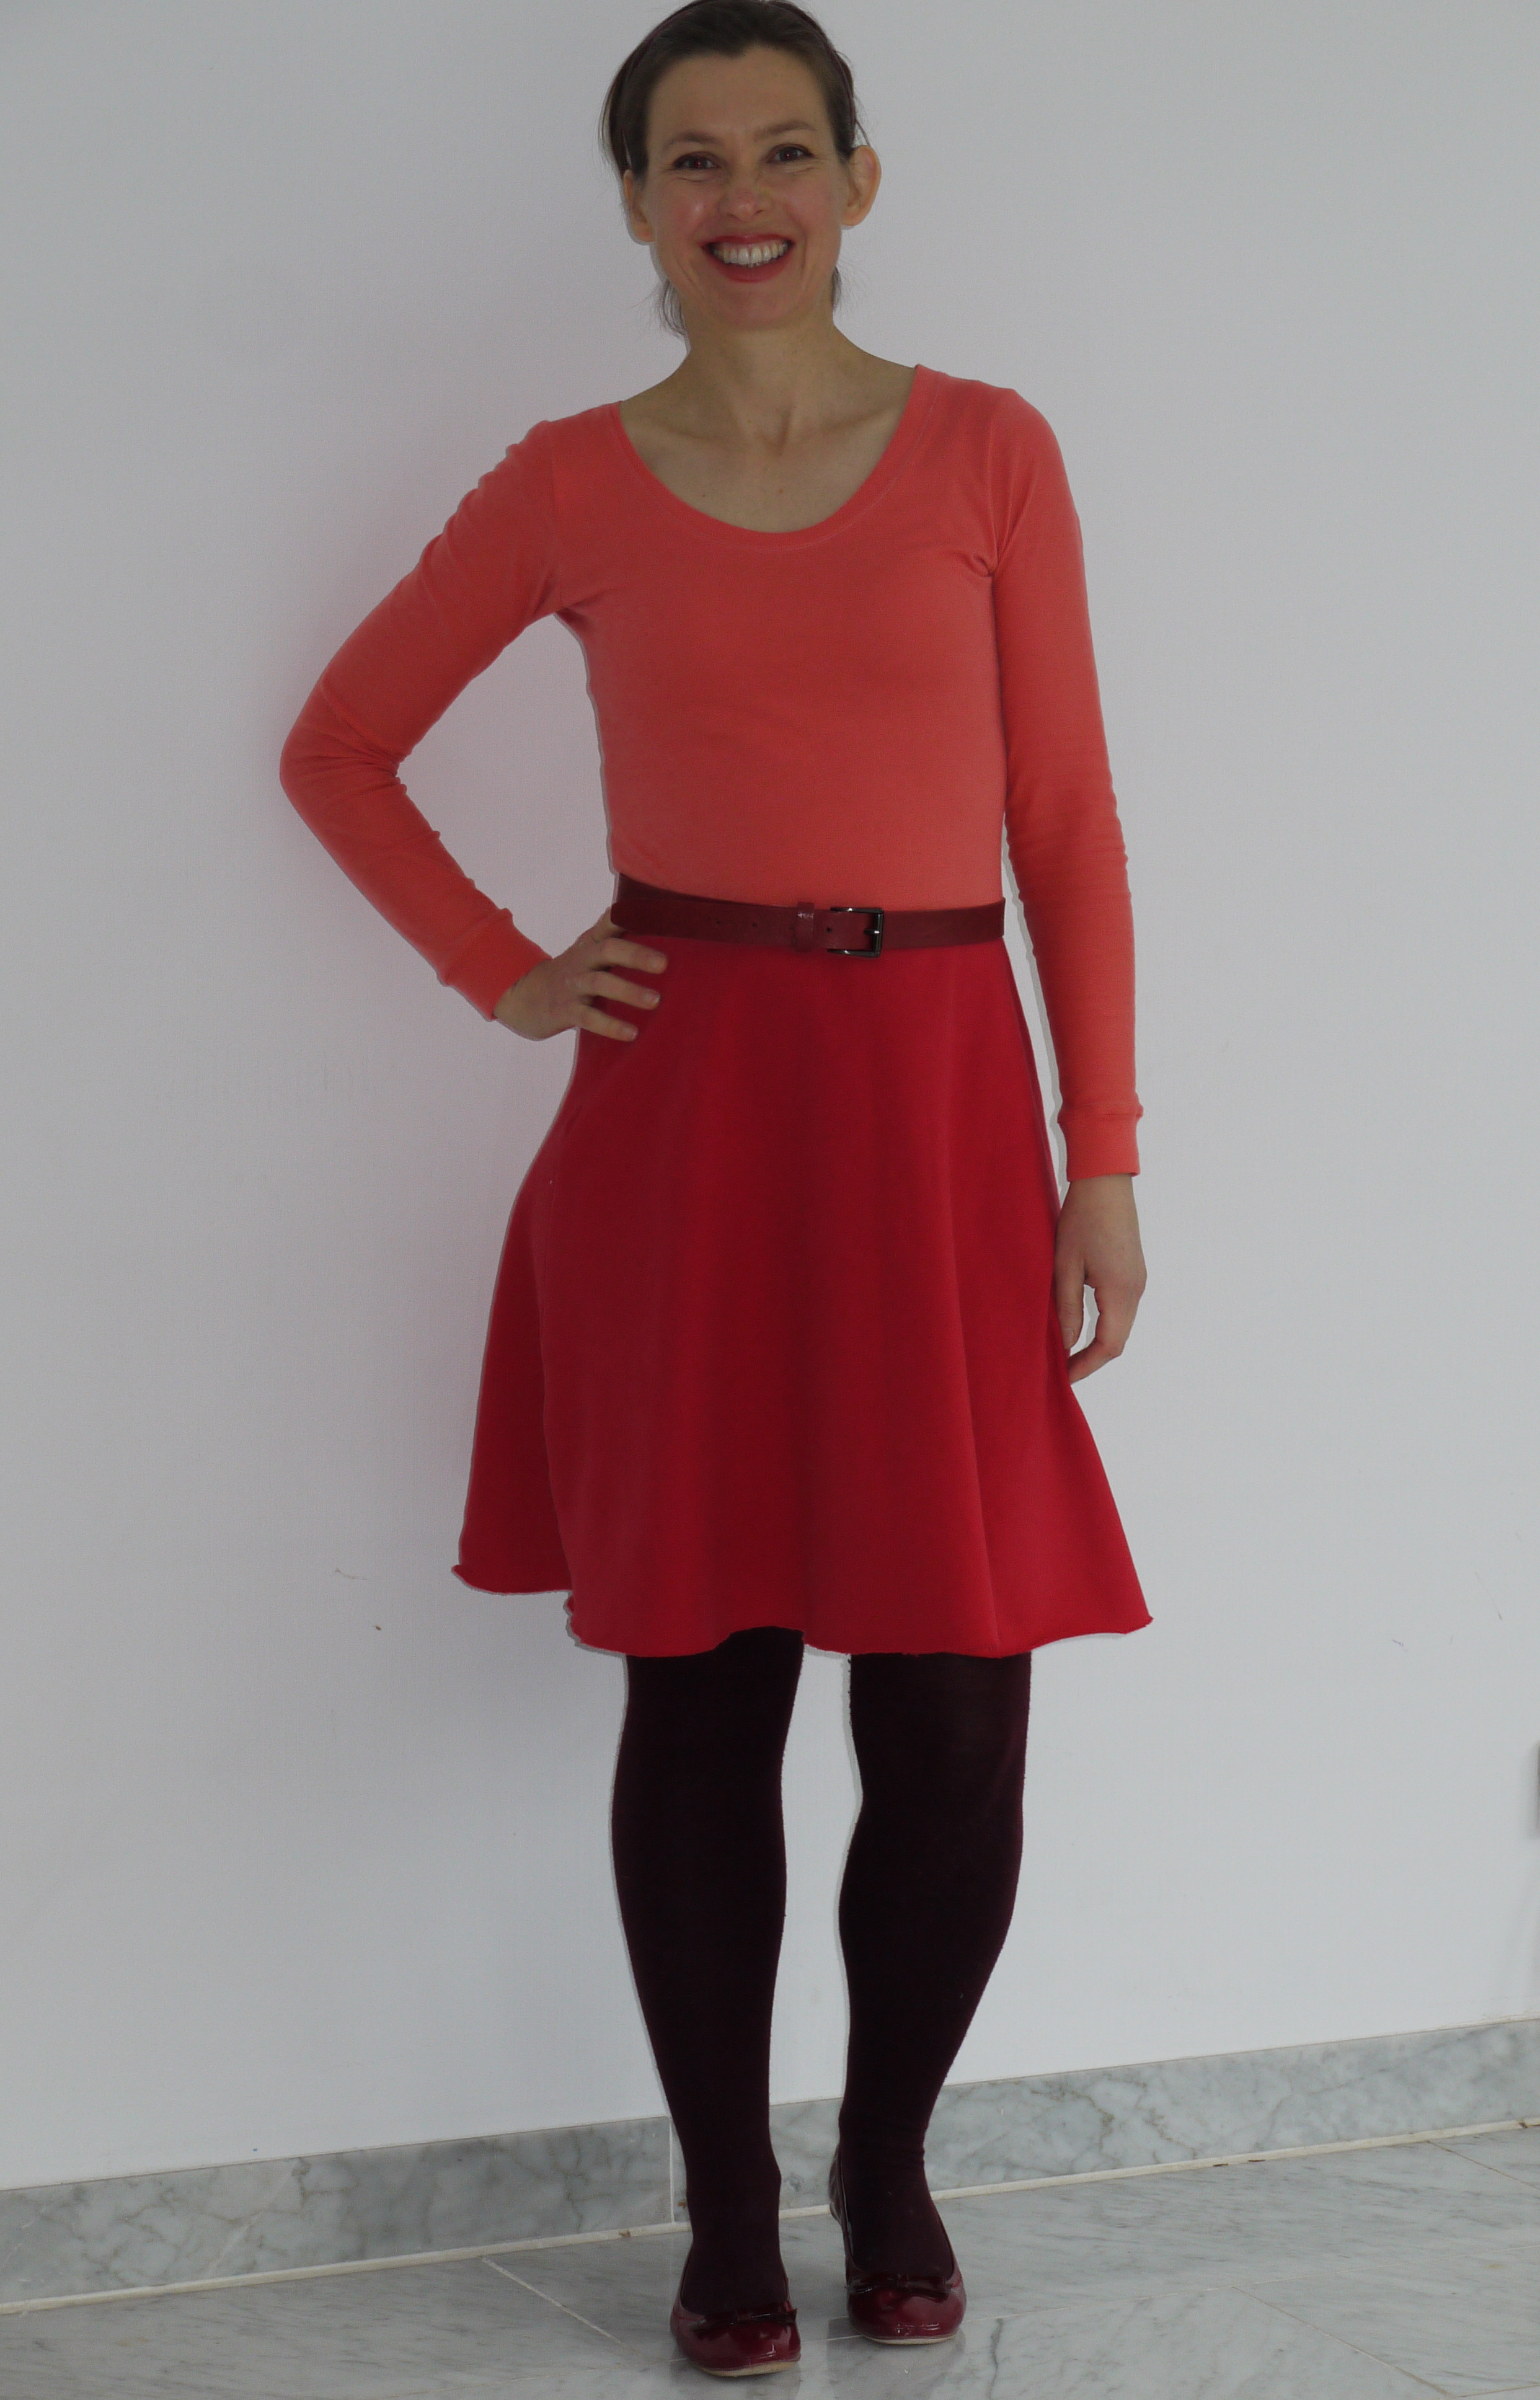 Coral organic single cotton jersey and red organic sweater knit